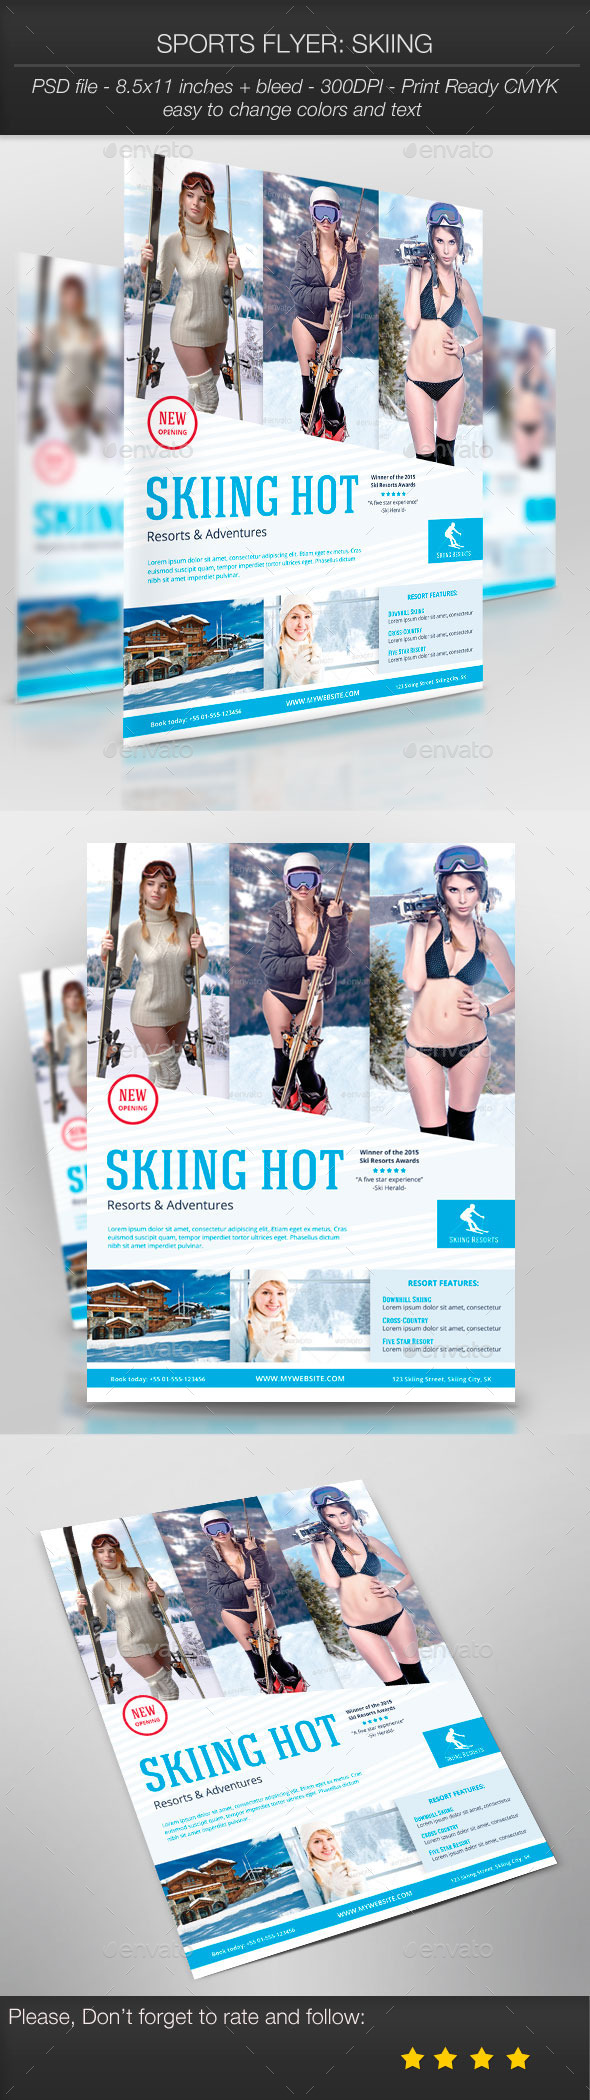 GraphicRiver Sports Flyer Skiing 10002206